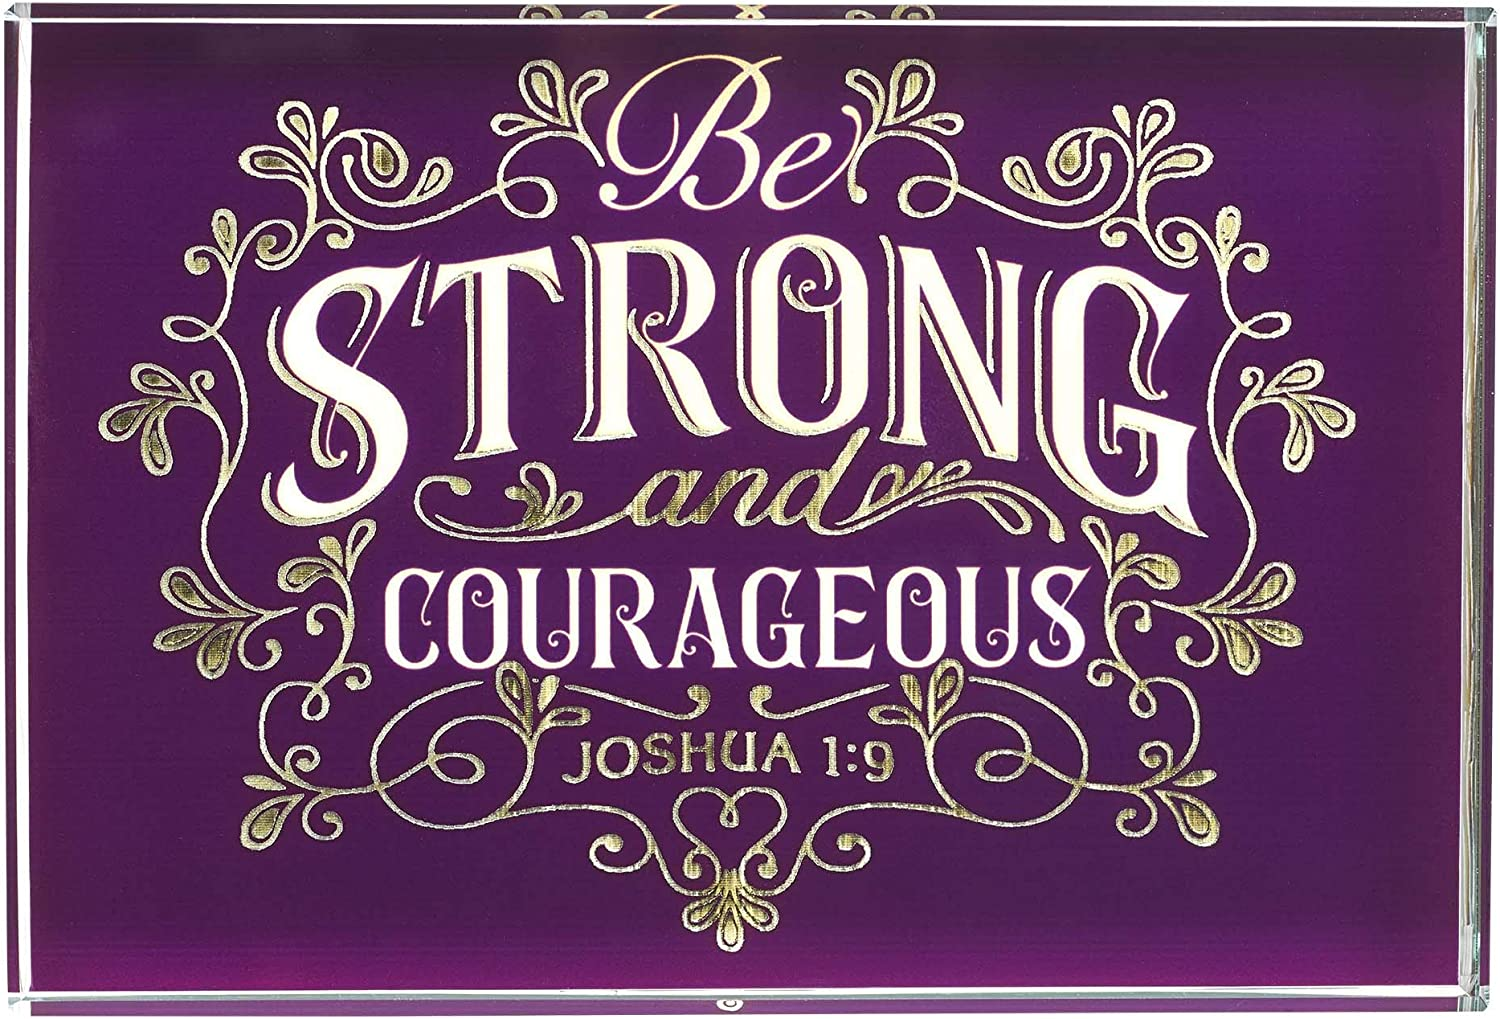 Christian Art Gifts Be Strong & Courageous Joshua 1:9 Purple Glass Plaque Inspirational Home or Office Desk Décor, 4 x 6